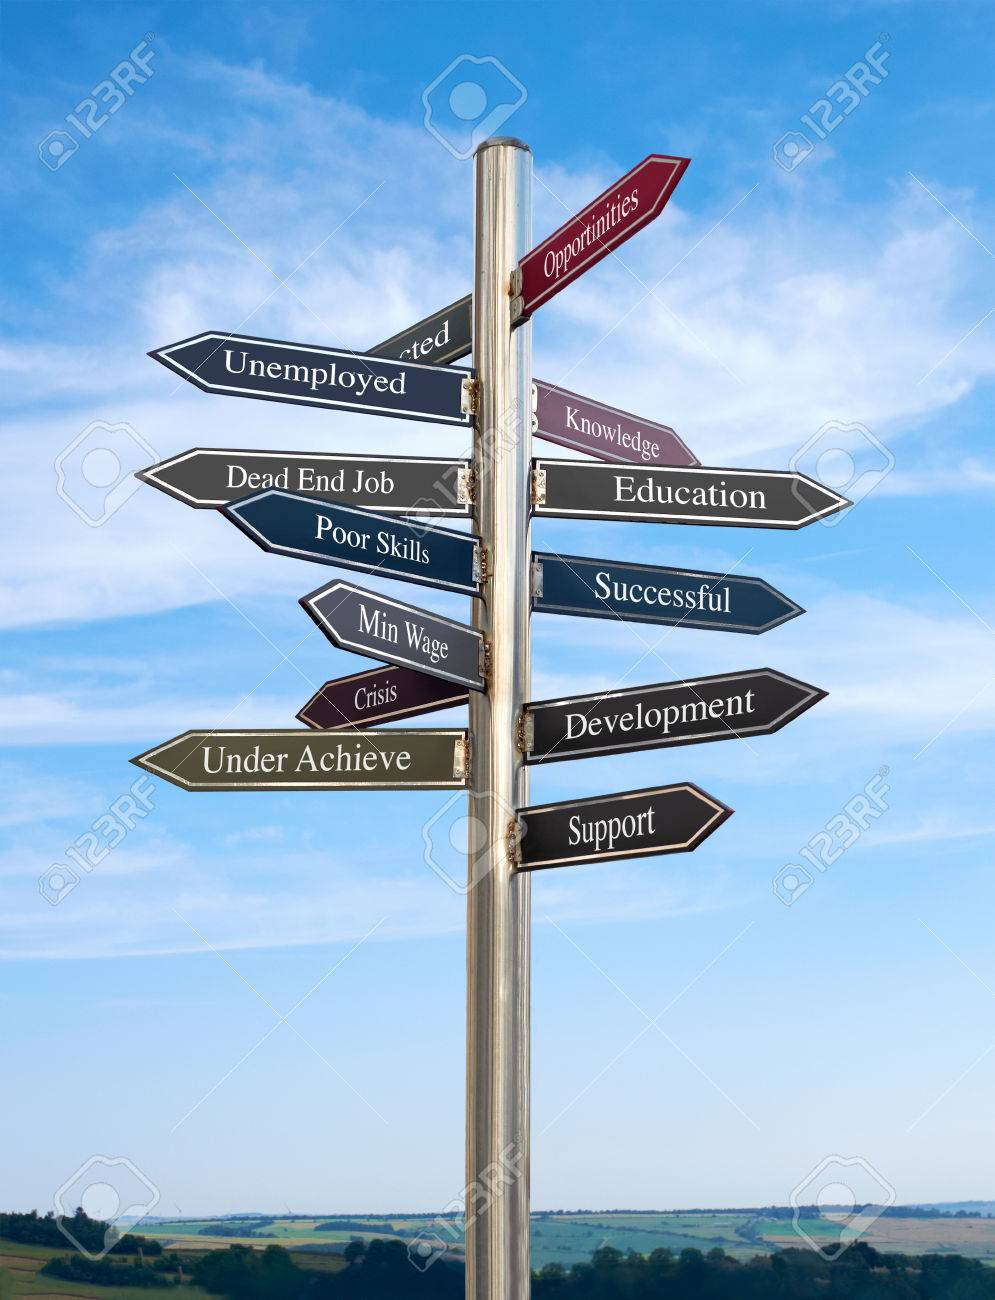 education going in the right direction signpost concept stock